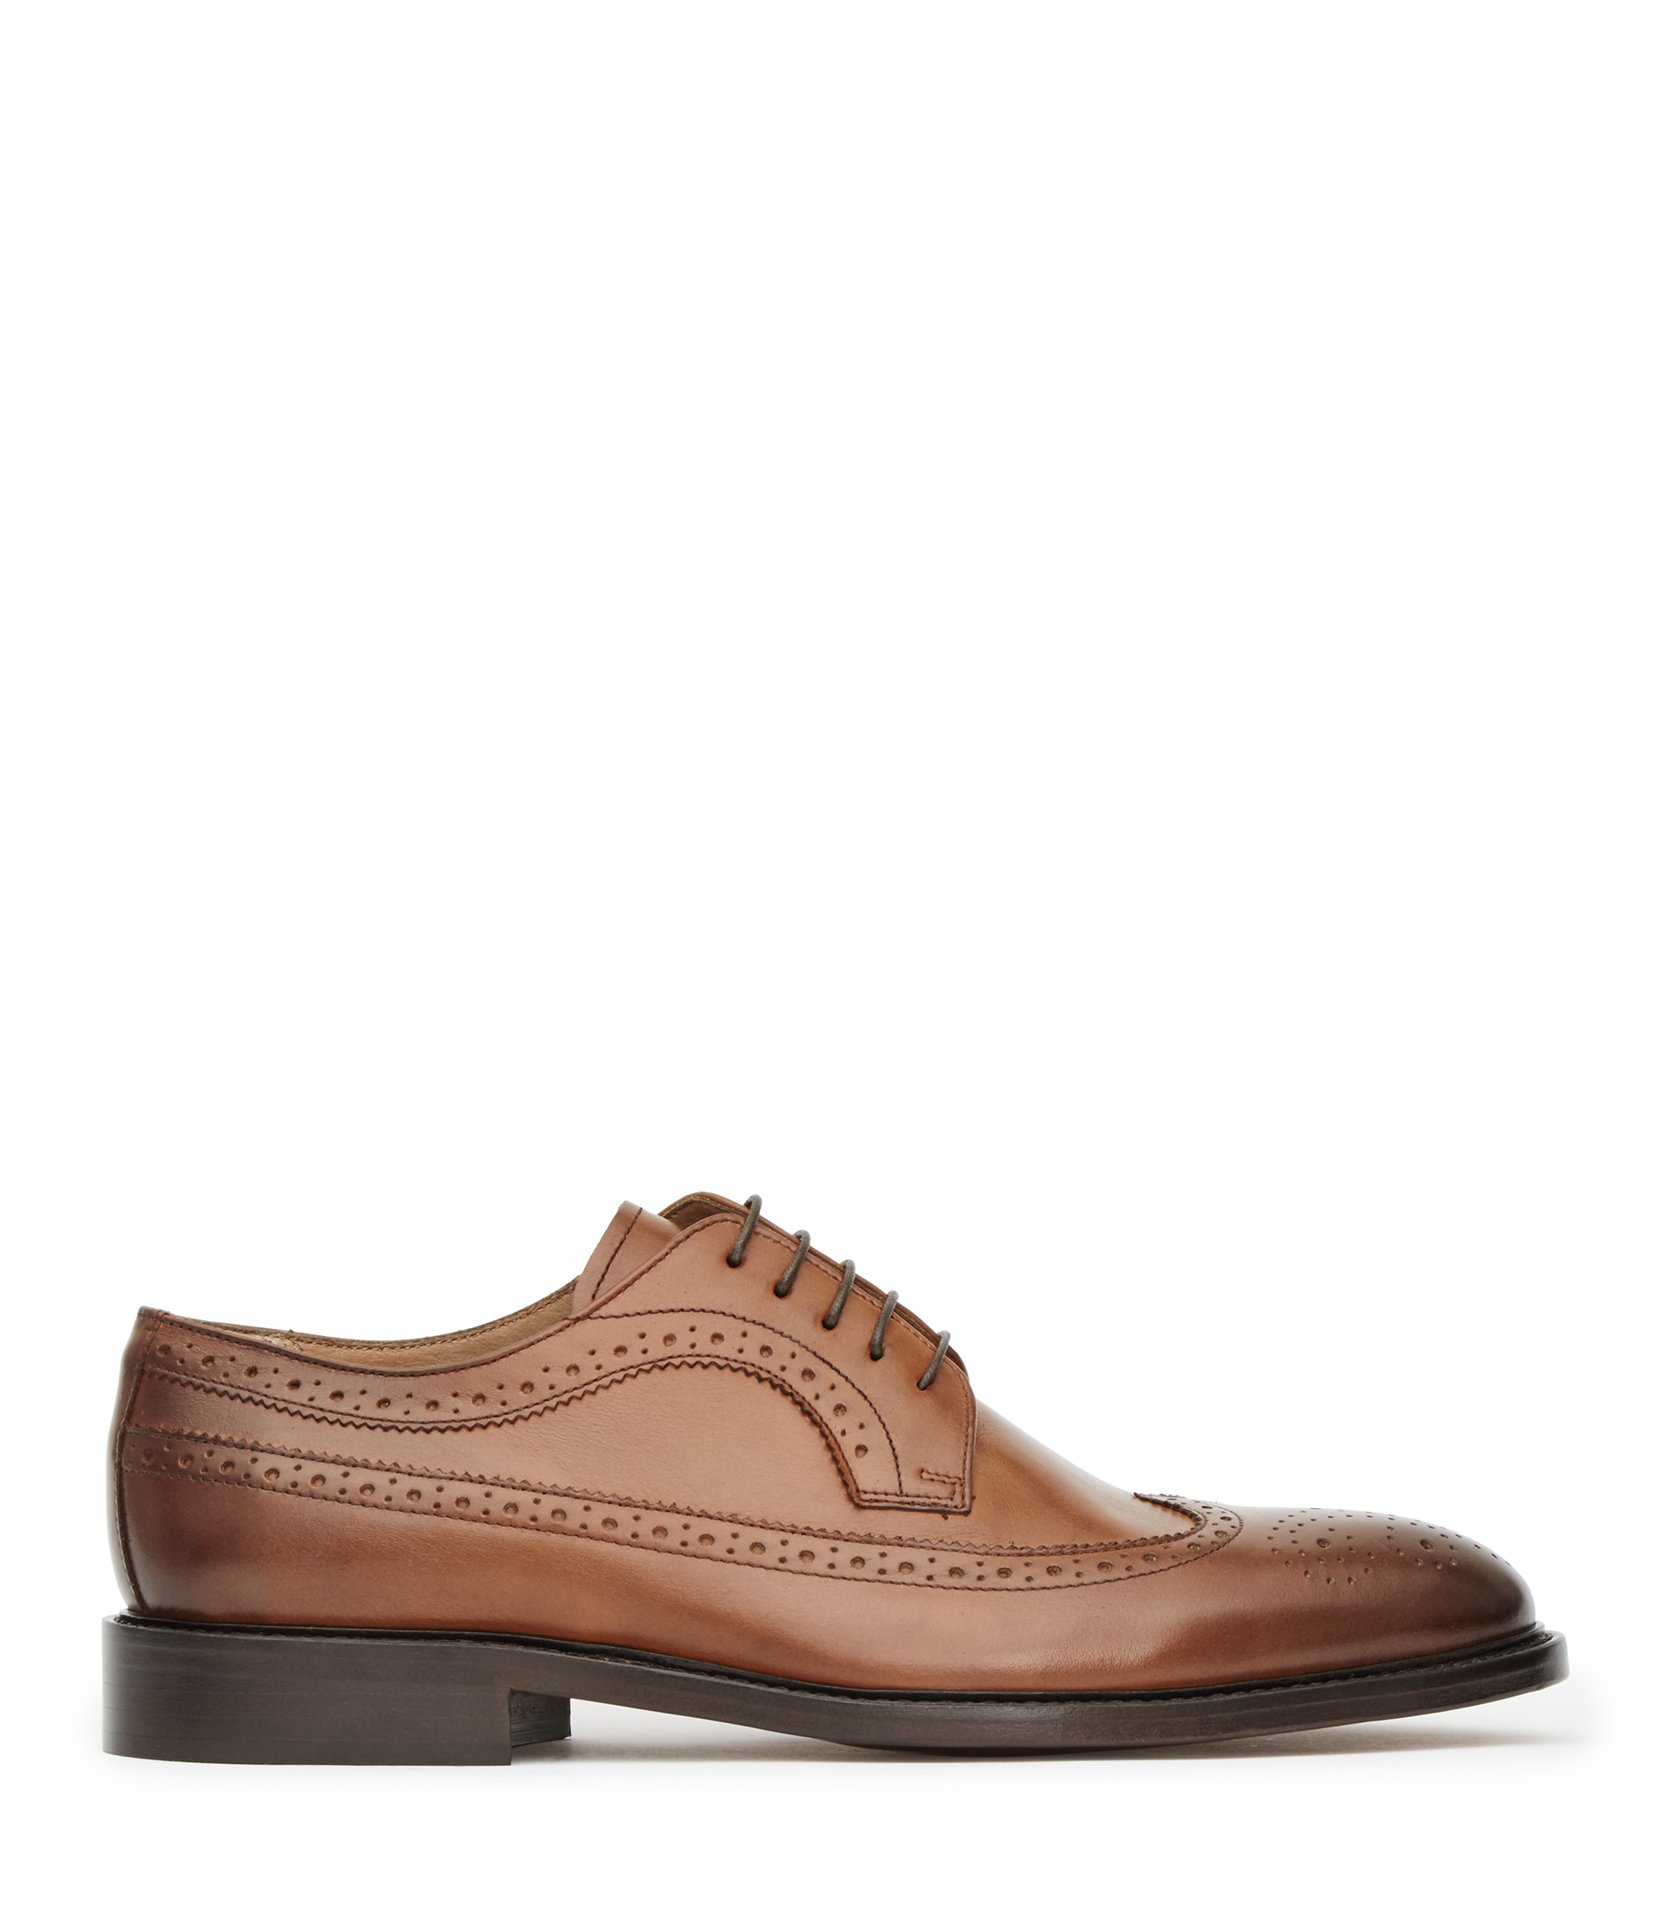 Reiss Brown Ash Leather Brogues